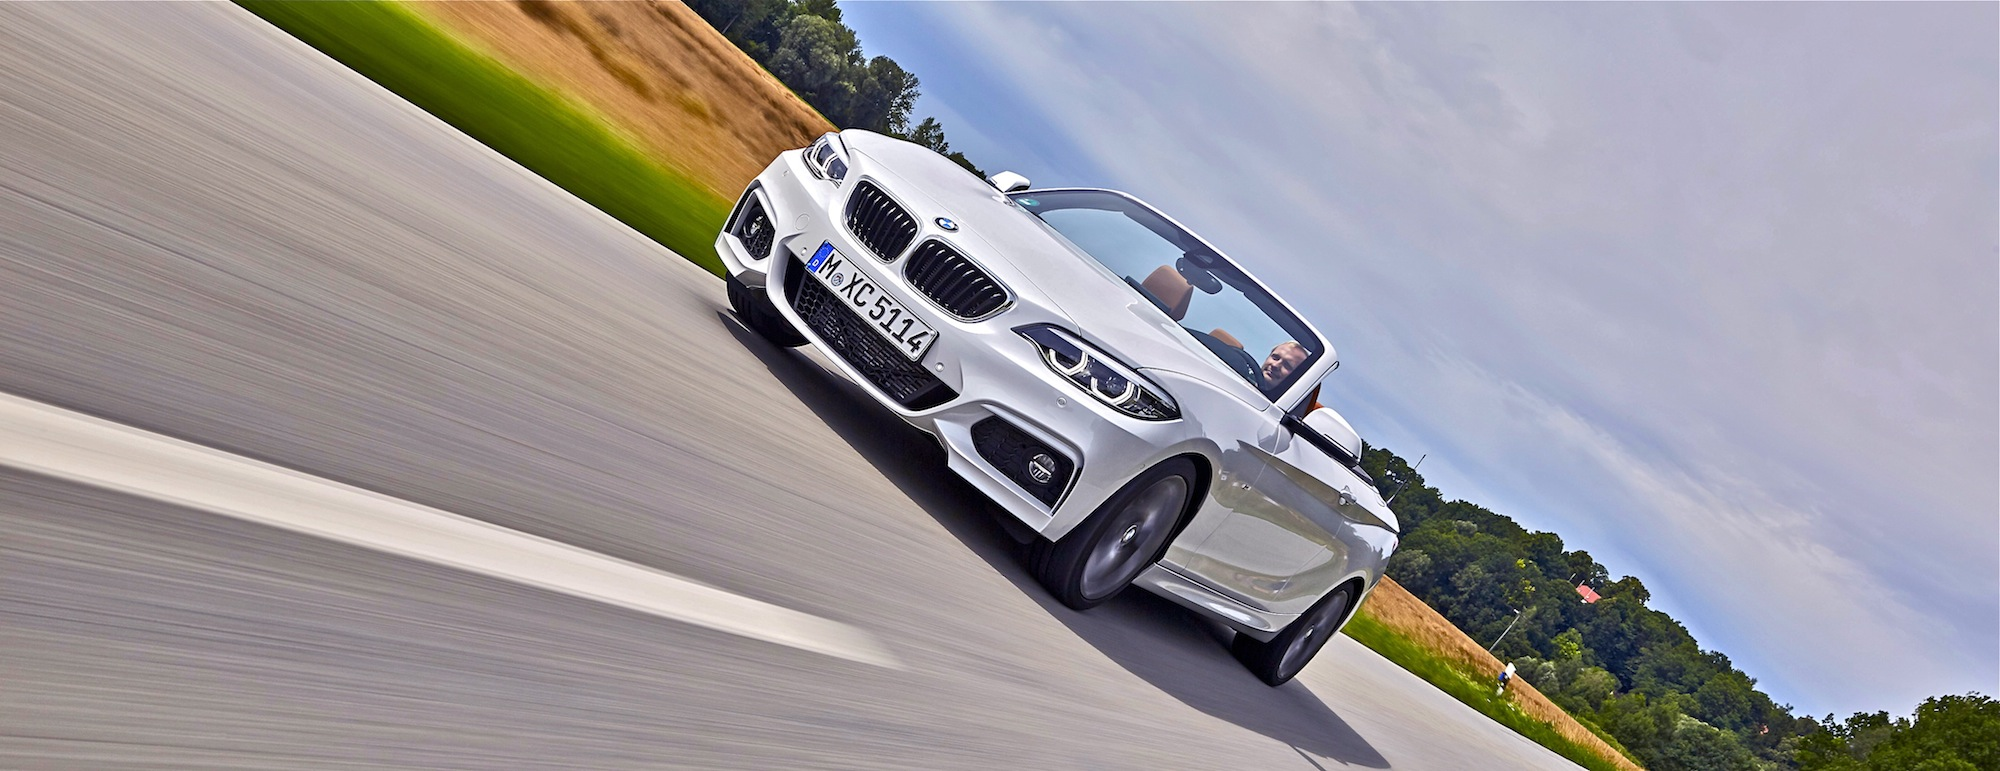 8 Of The Best BMW Convertible Lease Deals For February 2018